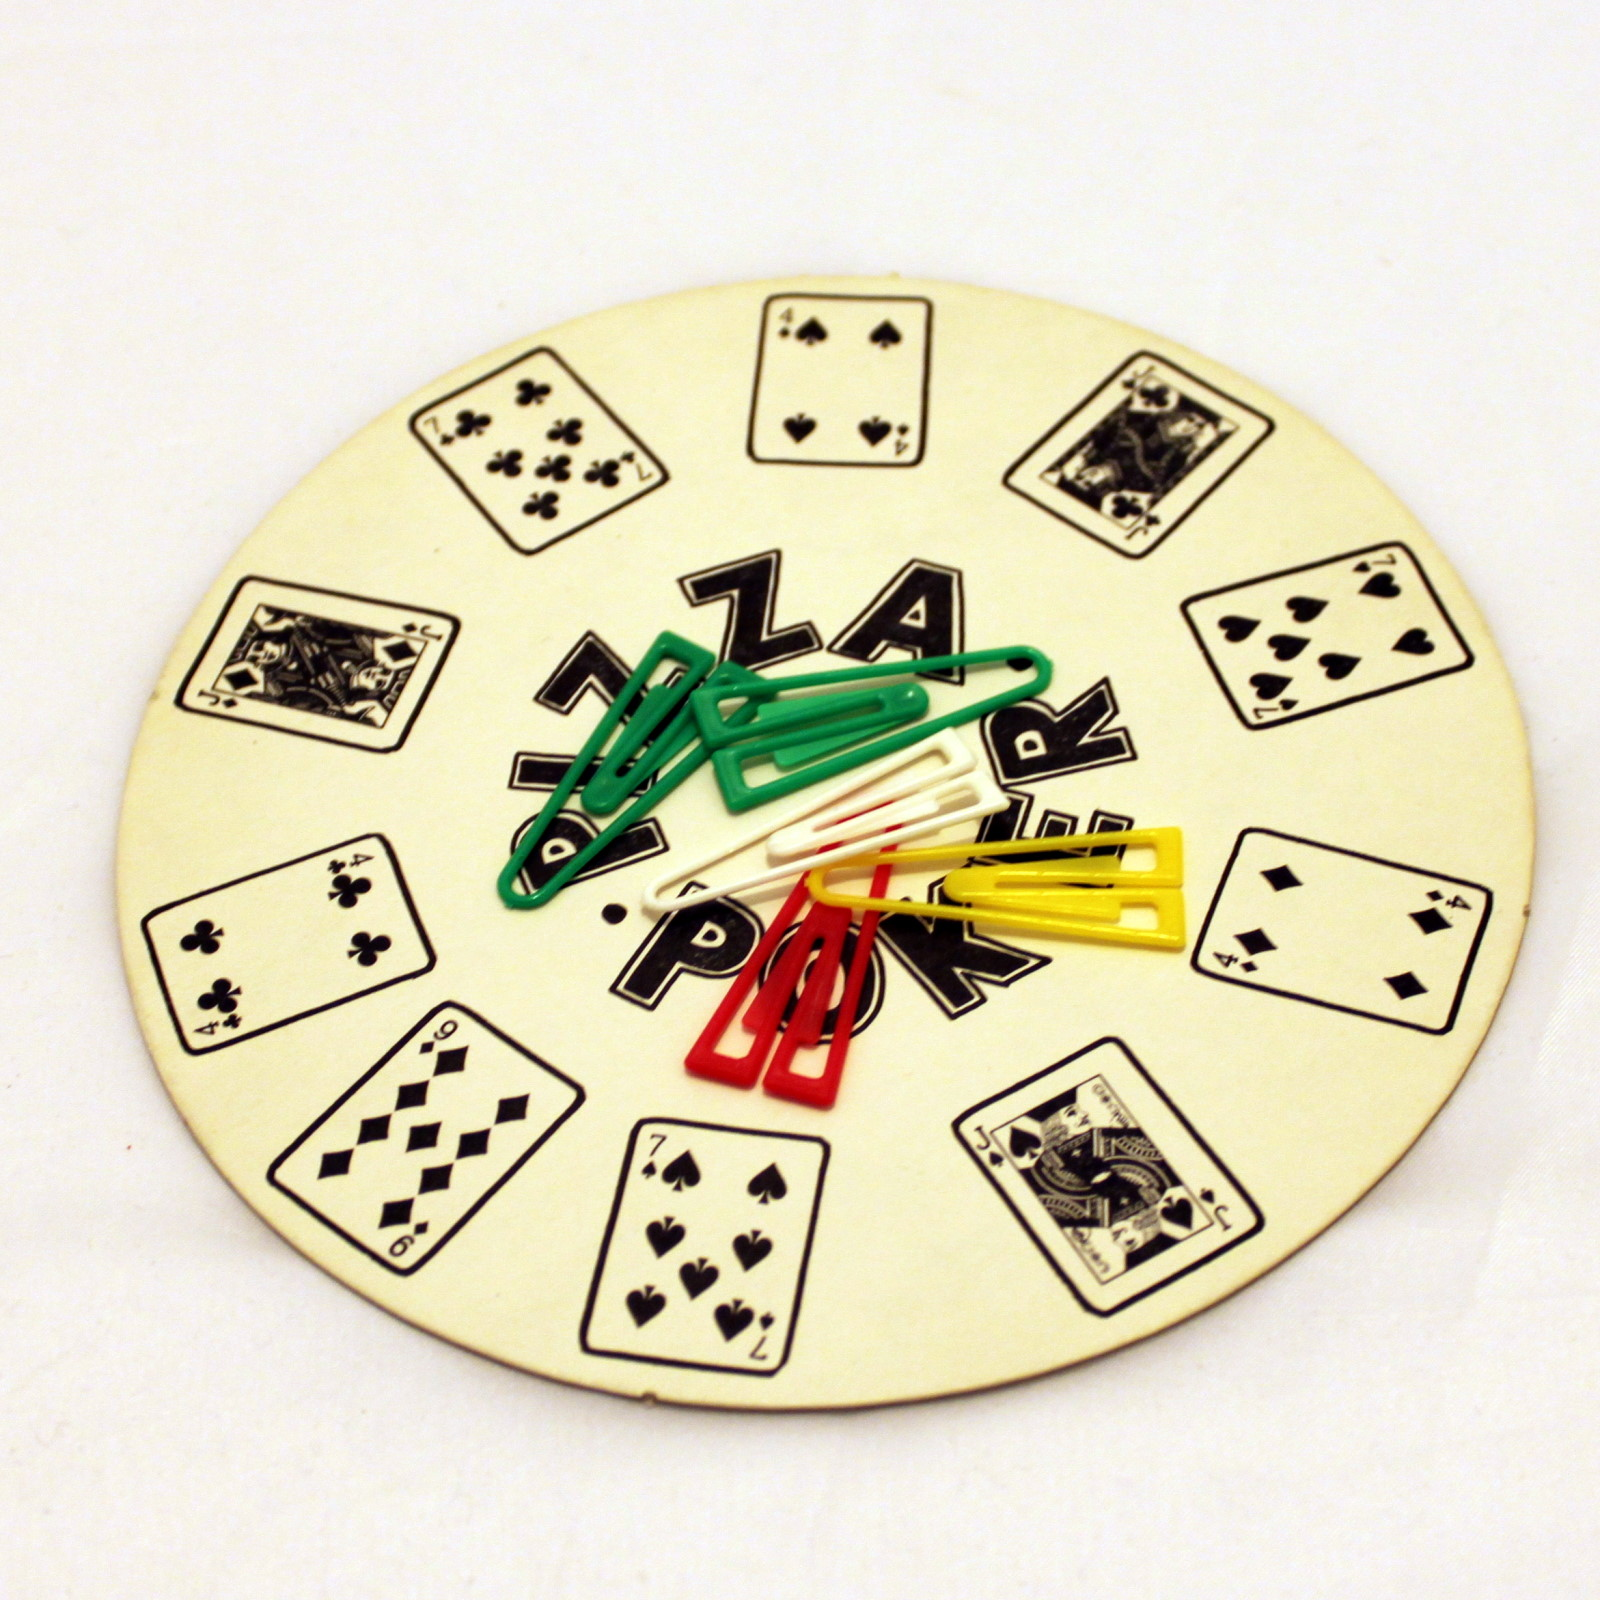 Pizza Poker by Nick Trost